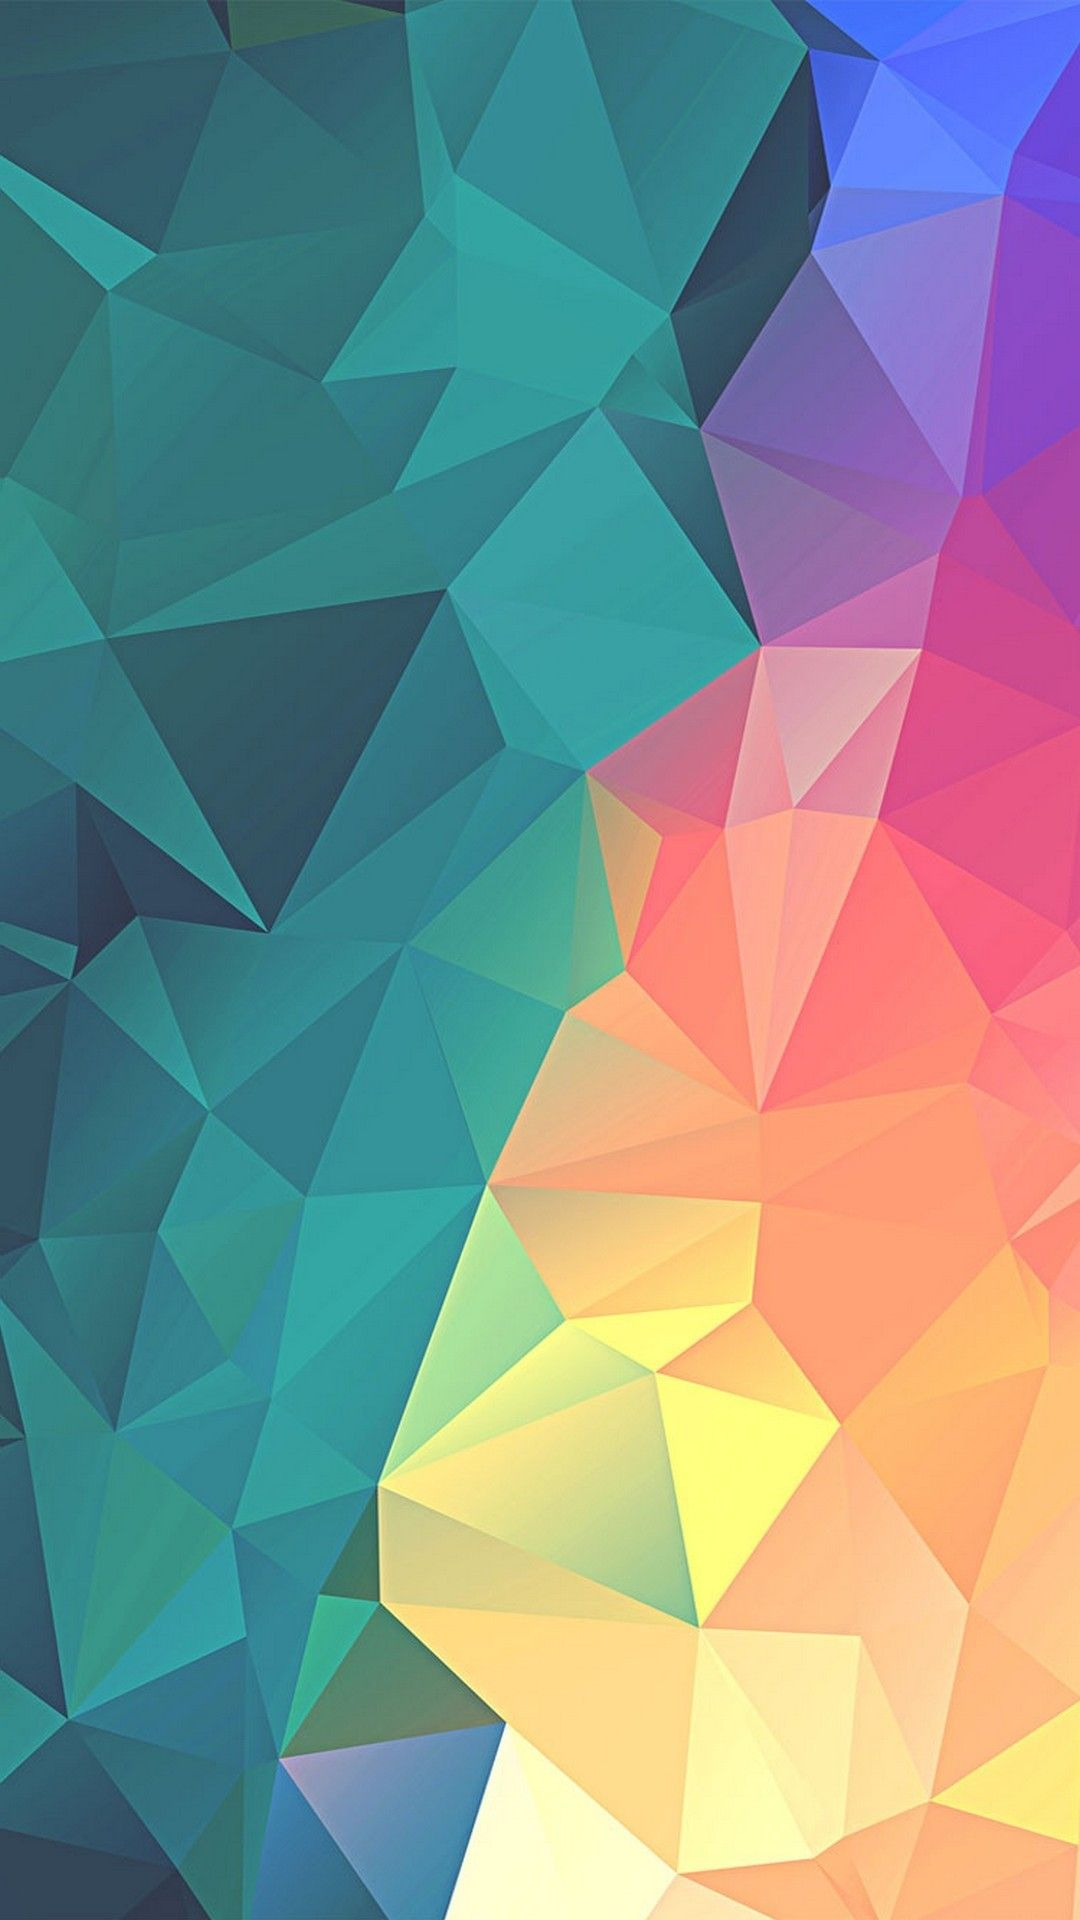 Abstract Vector HD Wallpapers For Mobile | Best HD Wallpapers | Wallpaperscute | Hd wallpapers ...